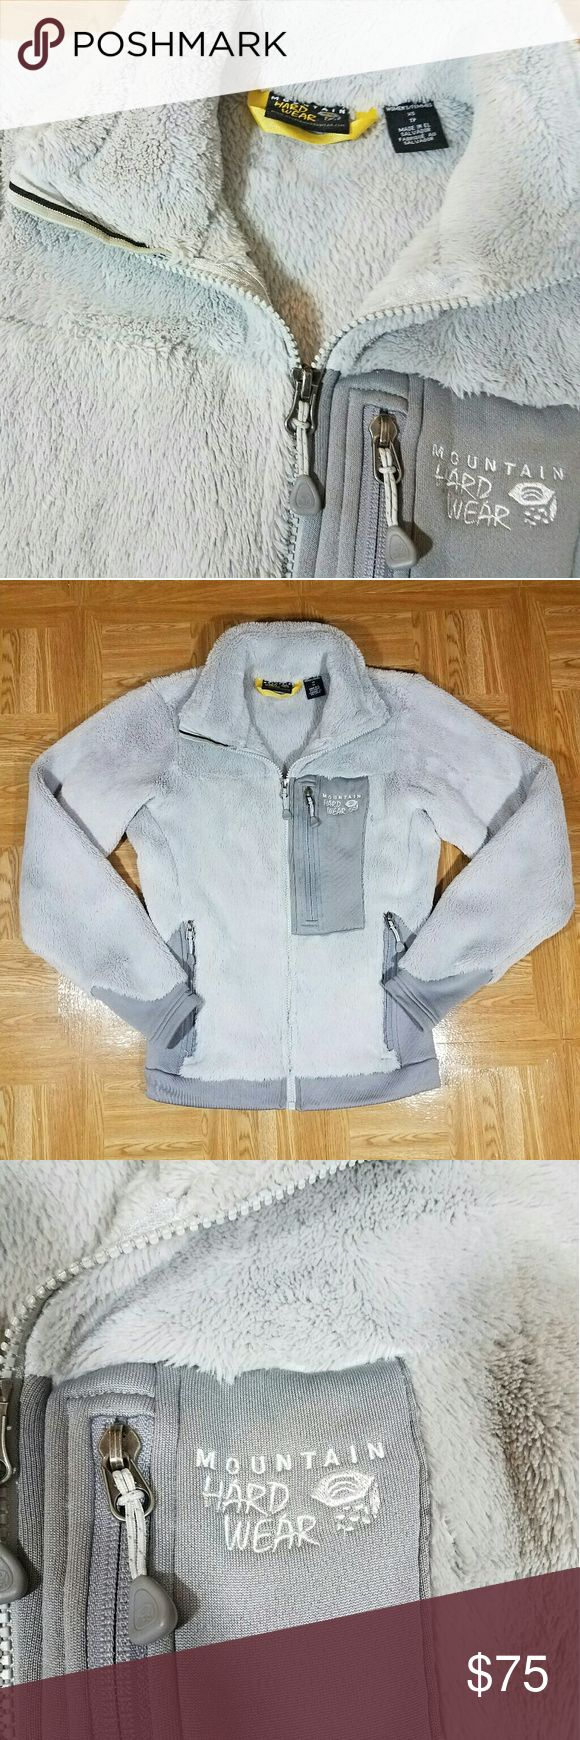 Mountain Hard Wear Monkey Jacket XS Zip Up Fleece Mountain Hardwear Monkey Jacket. Size Extra Small. Grey. Has three zippered pockets. In excellent preowned condition, no piling or holes. Very soft and warm Mountain Hard Wear Jackets & Coats